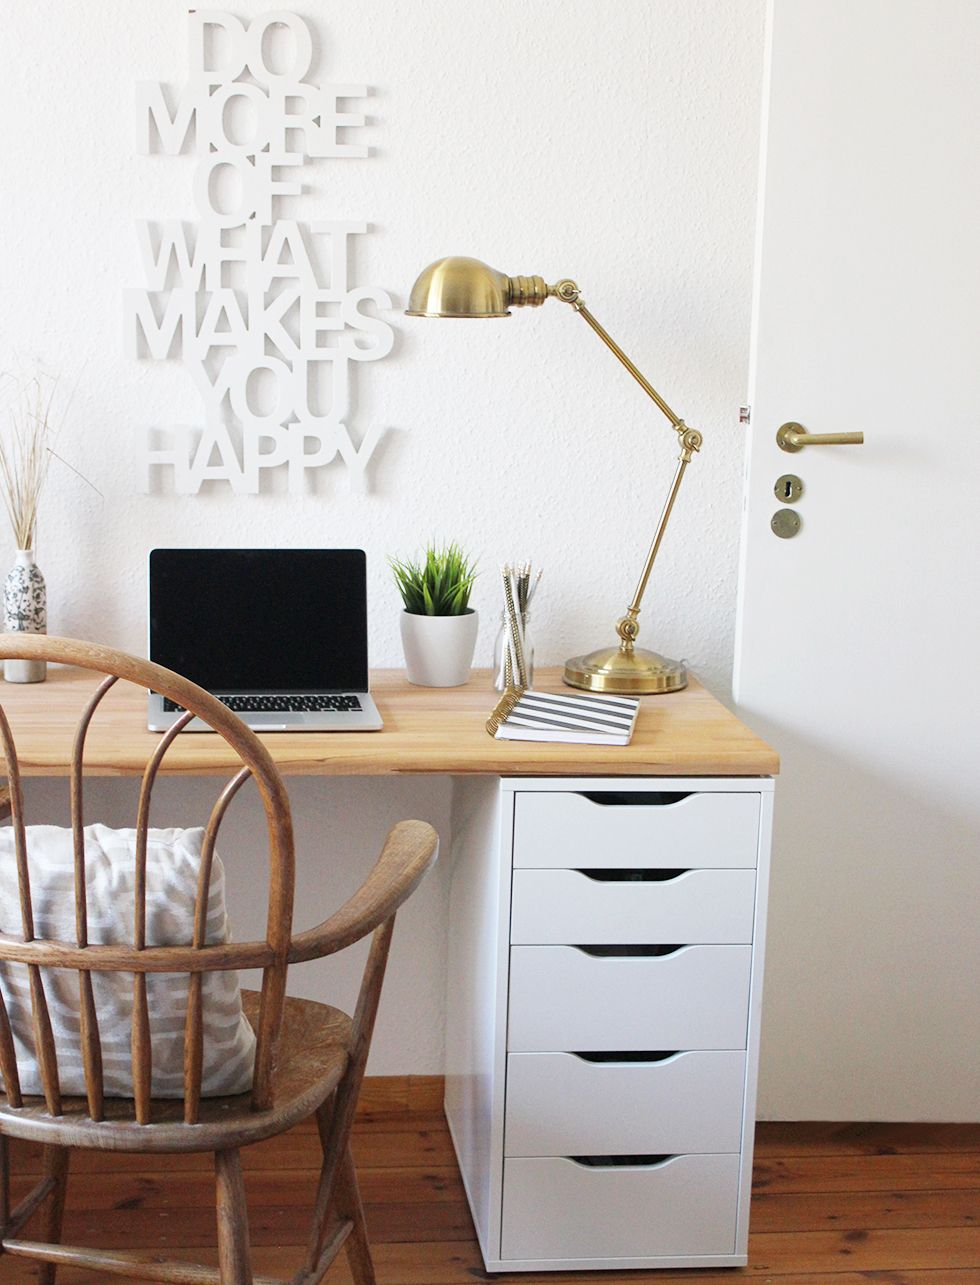 DIY desk for two using Ikea Alex drawer + a wooden countertop easy furniture craft Craft